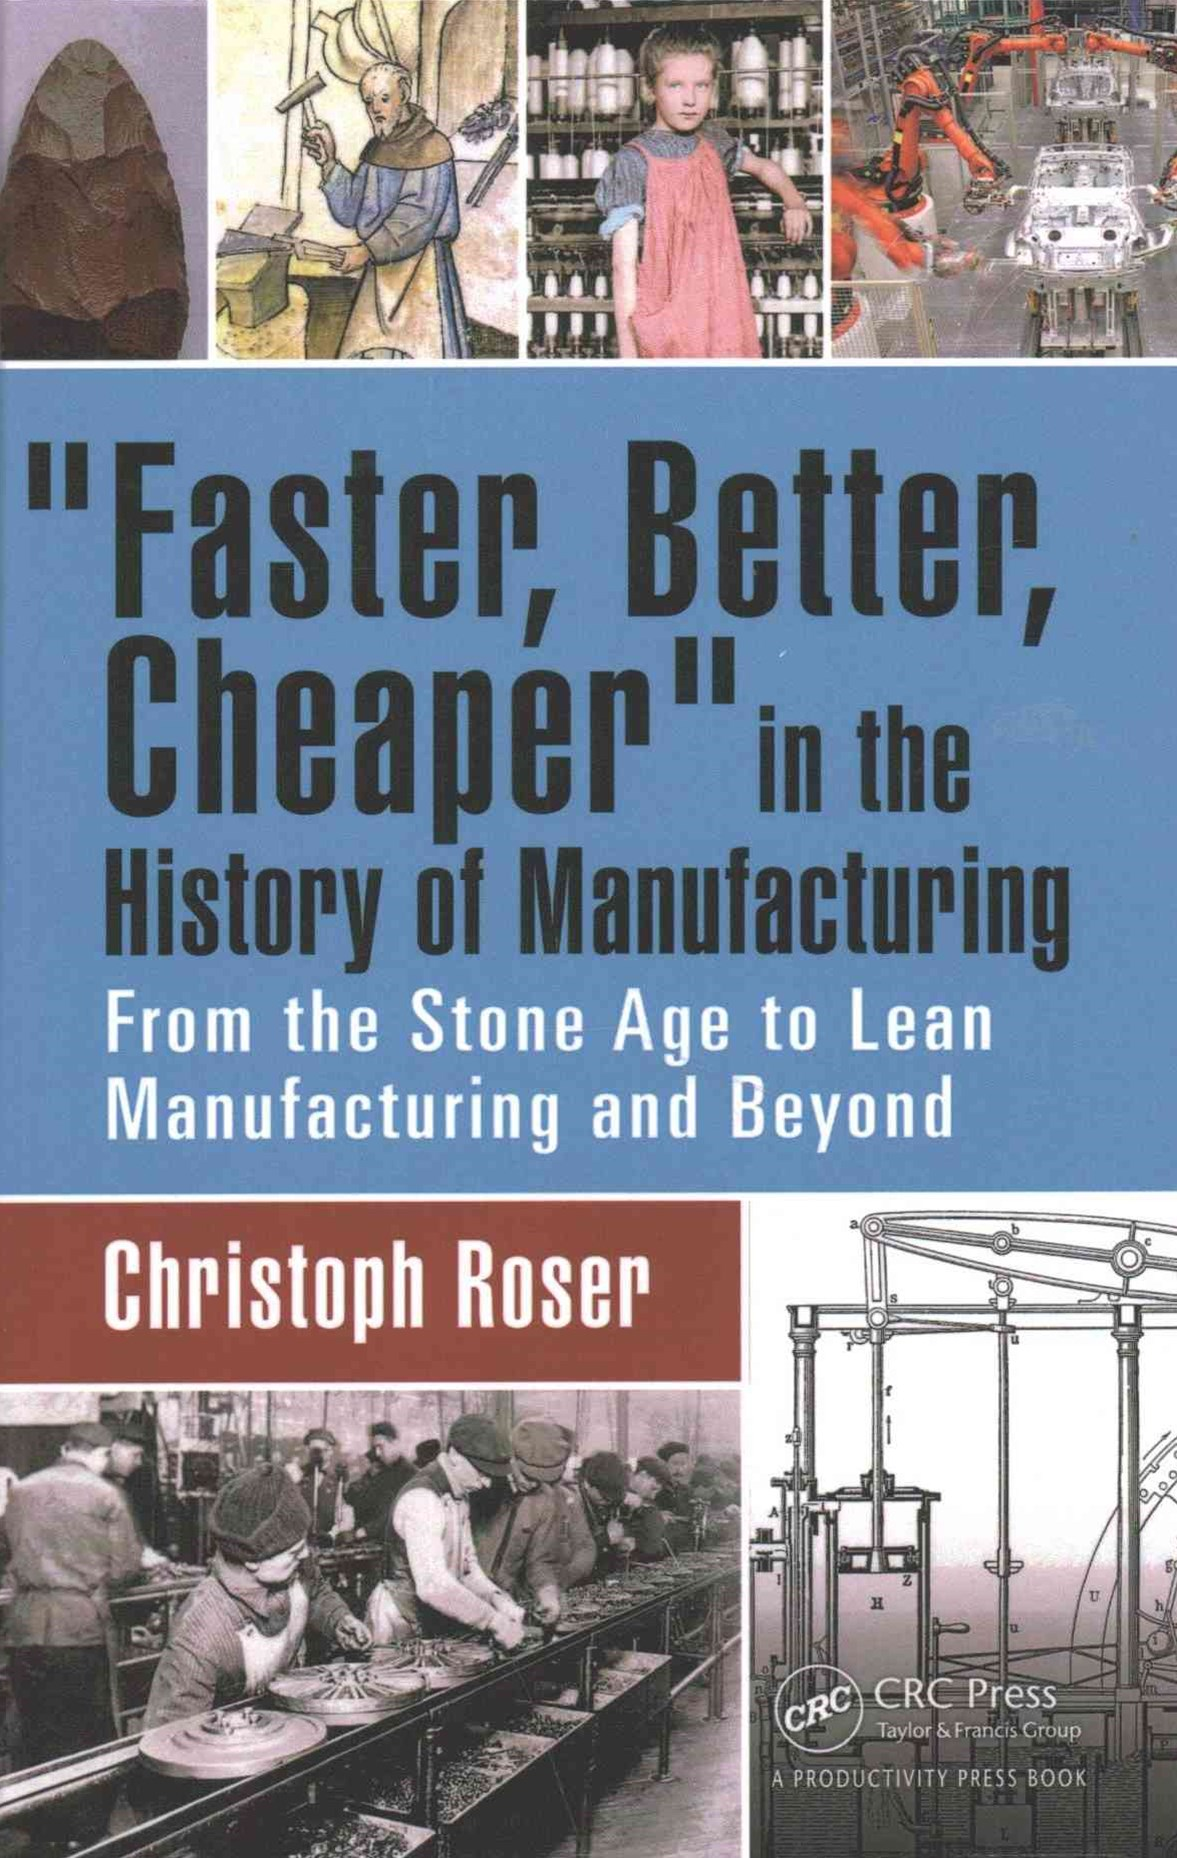 &quote;Faster, Better, Cheaper&quote; in the History of Manufacturing